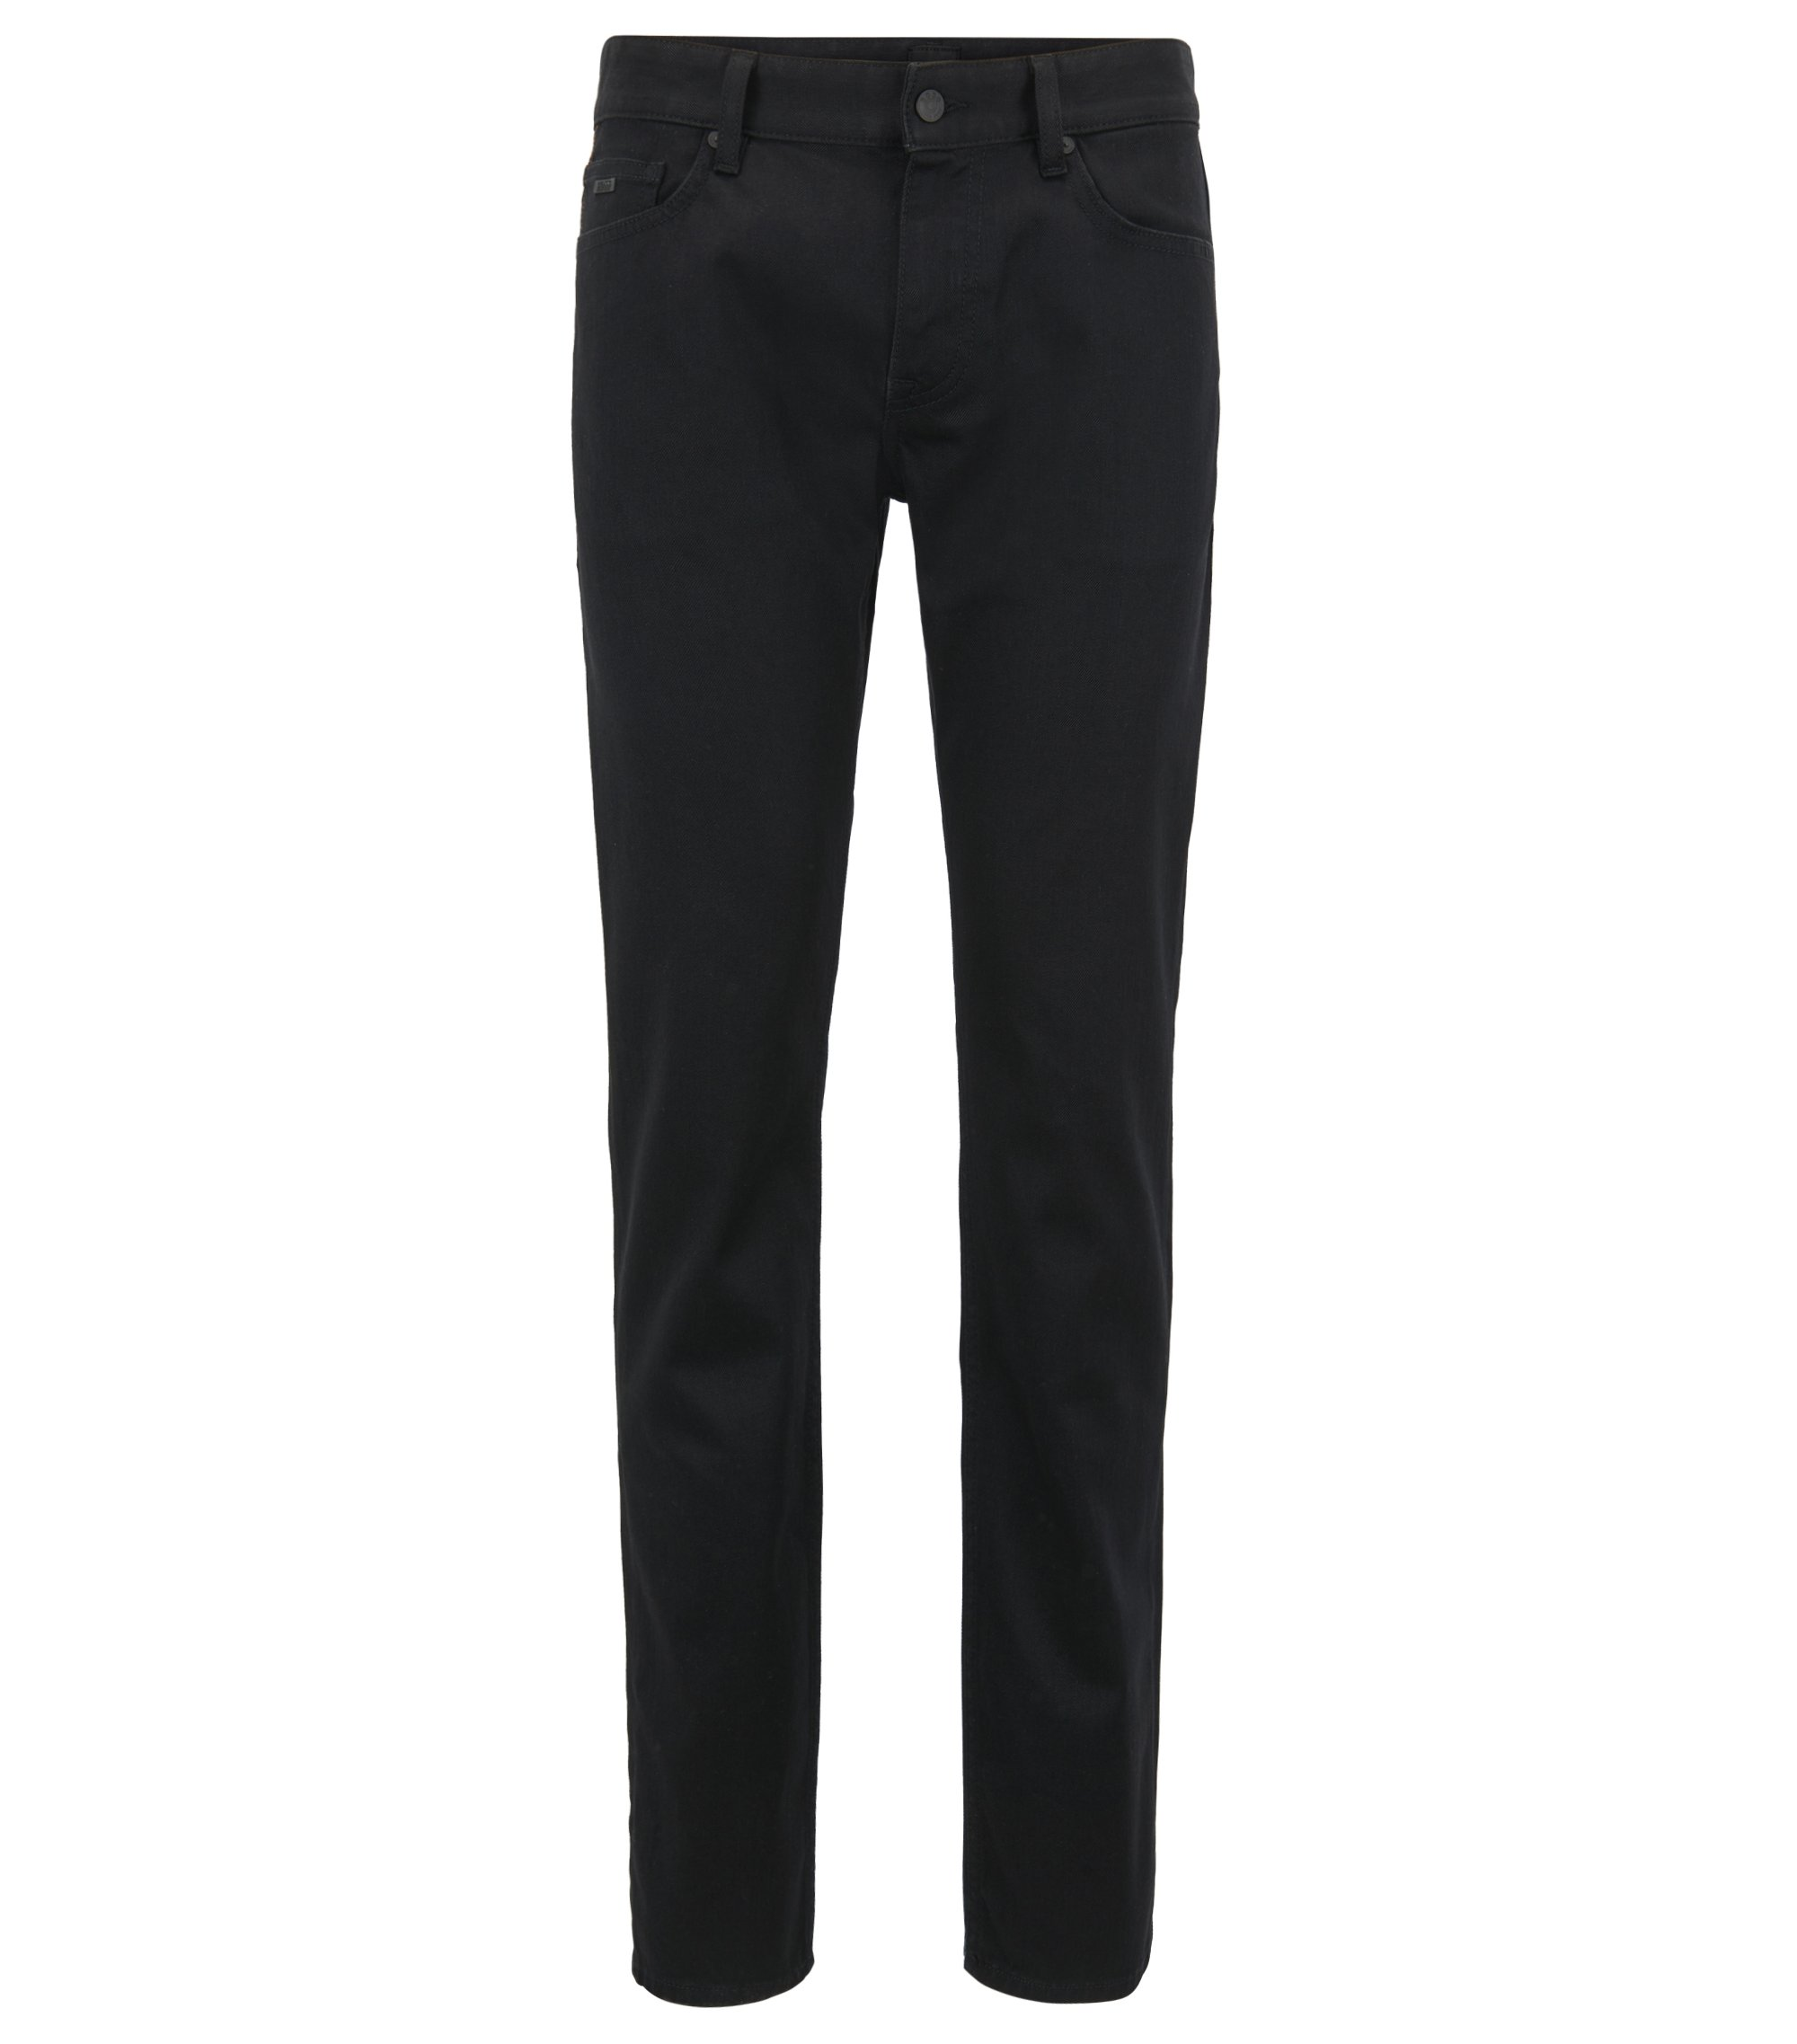 Jean Slim Fit en denim stretch noir, Noir